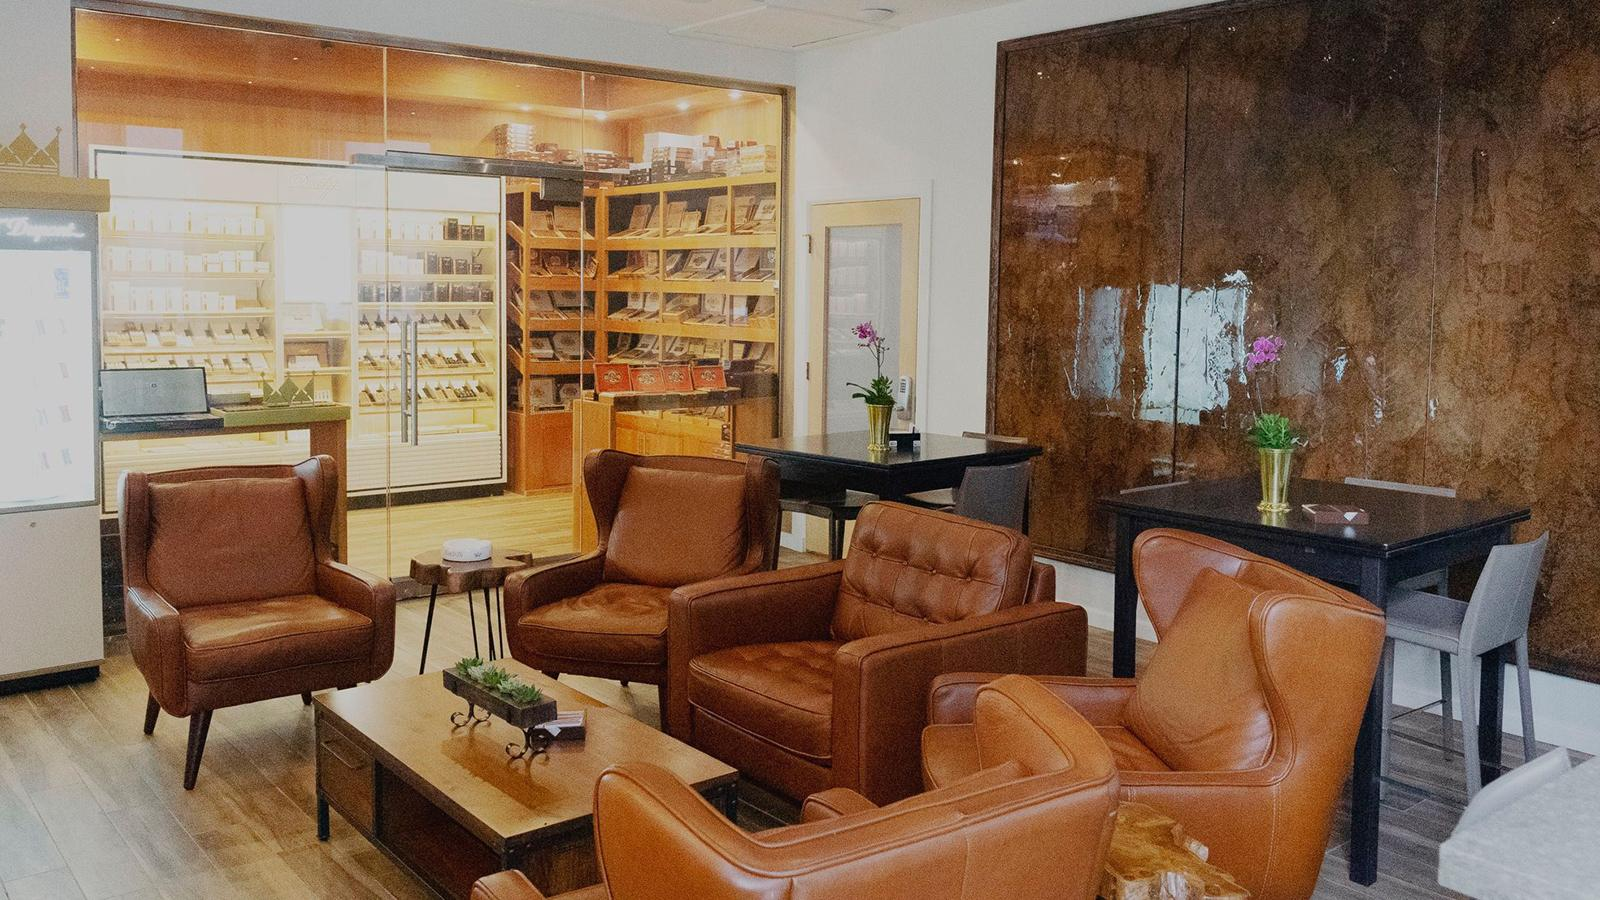 Walk in off the street and the humidor is right in front of you. So are 15 comfortable chairs in the lounge's public space. More chairs are on the patio.